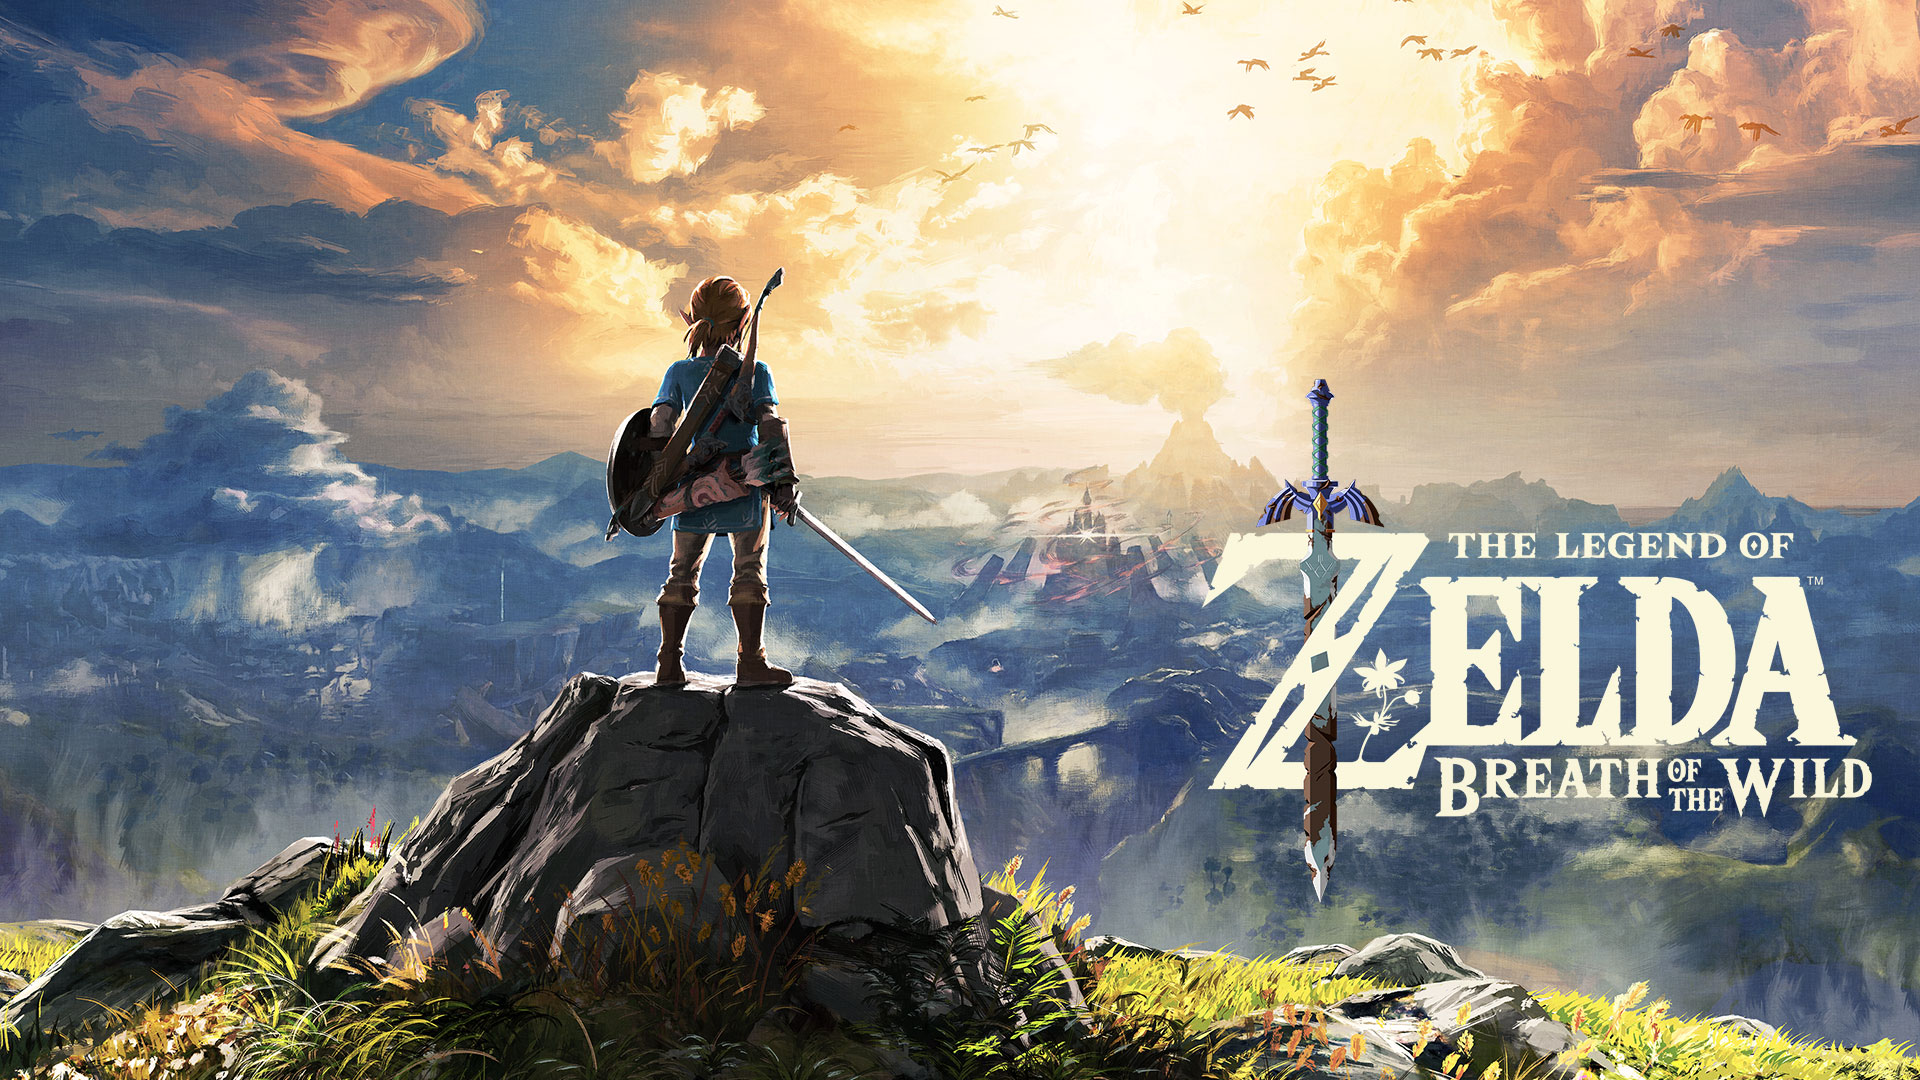 Breath of the Wild on Sale Until June 21st